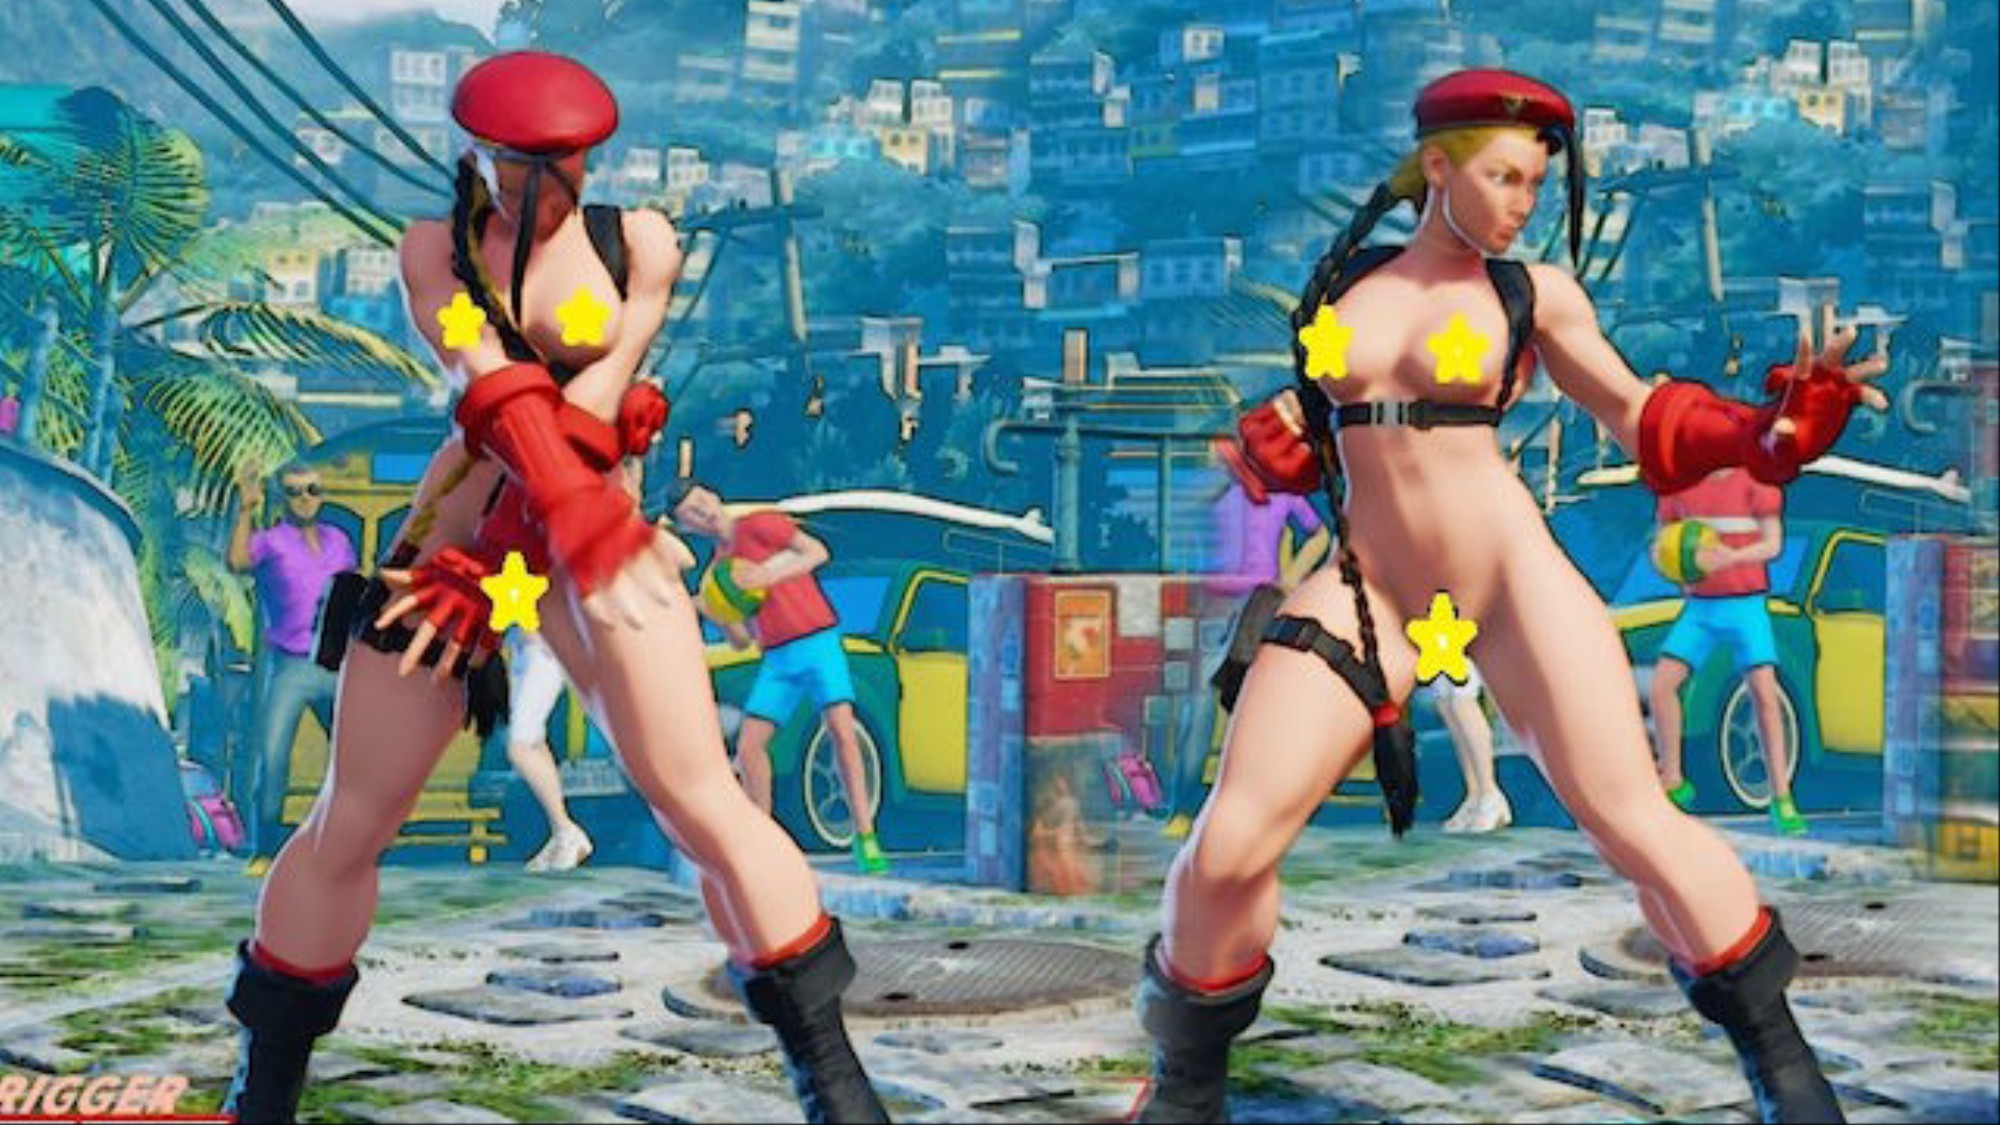 Yup, There Are 'Street Fighter V' Nude Mods Now - VICE